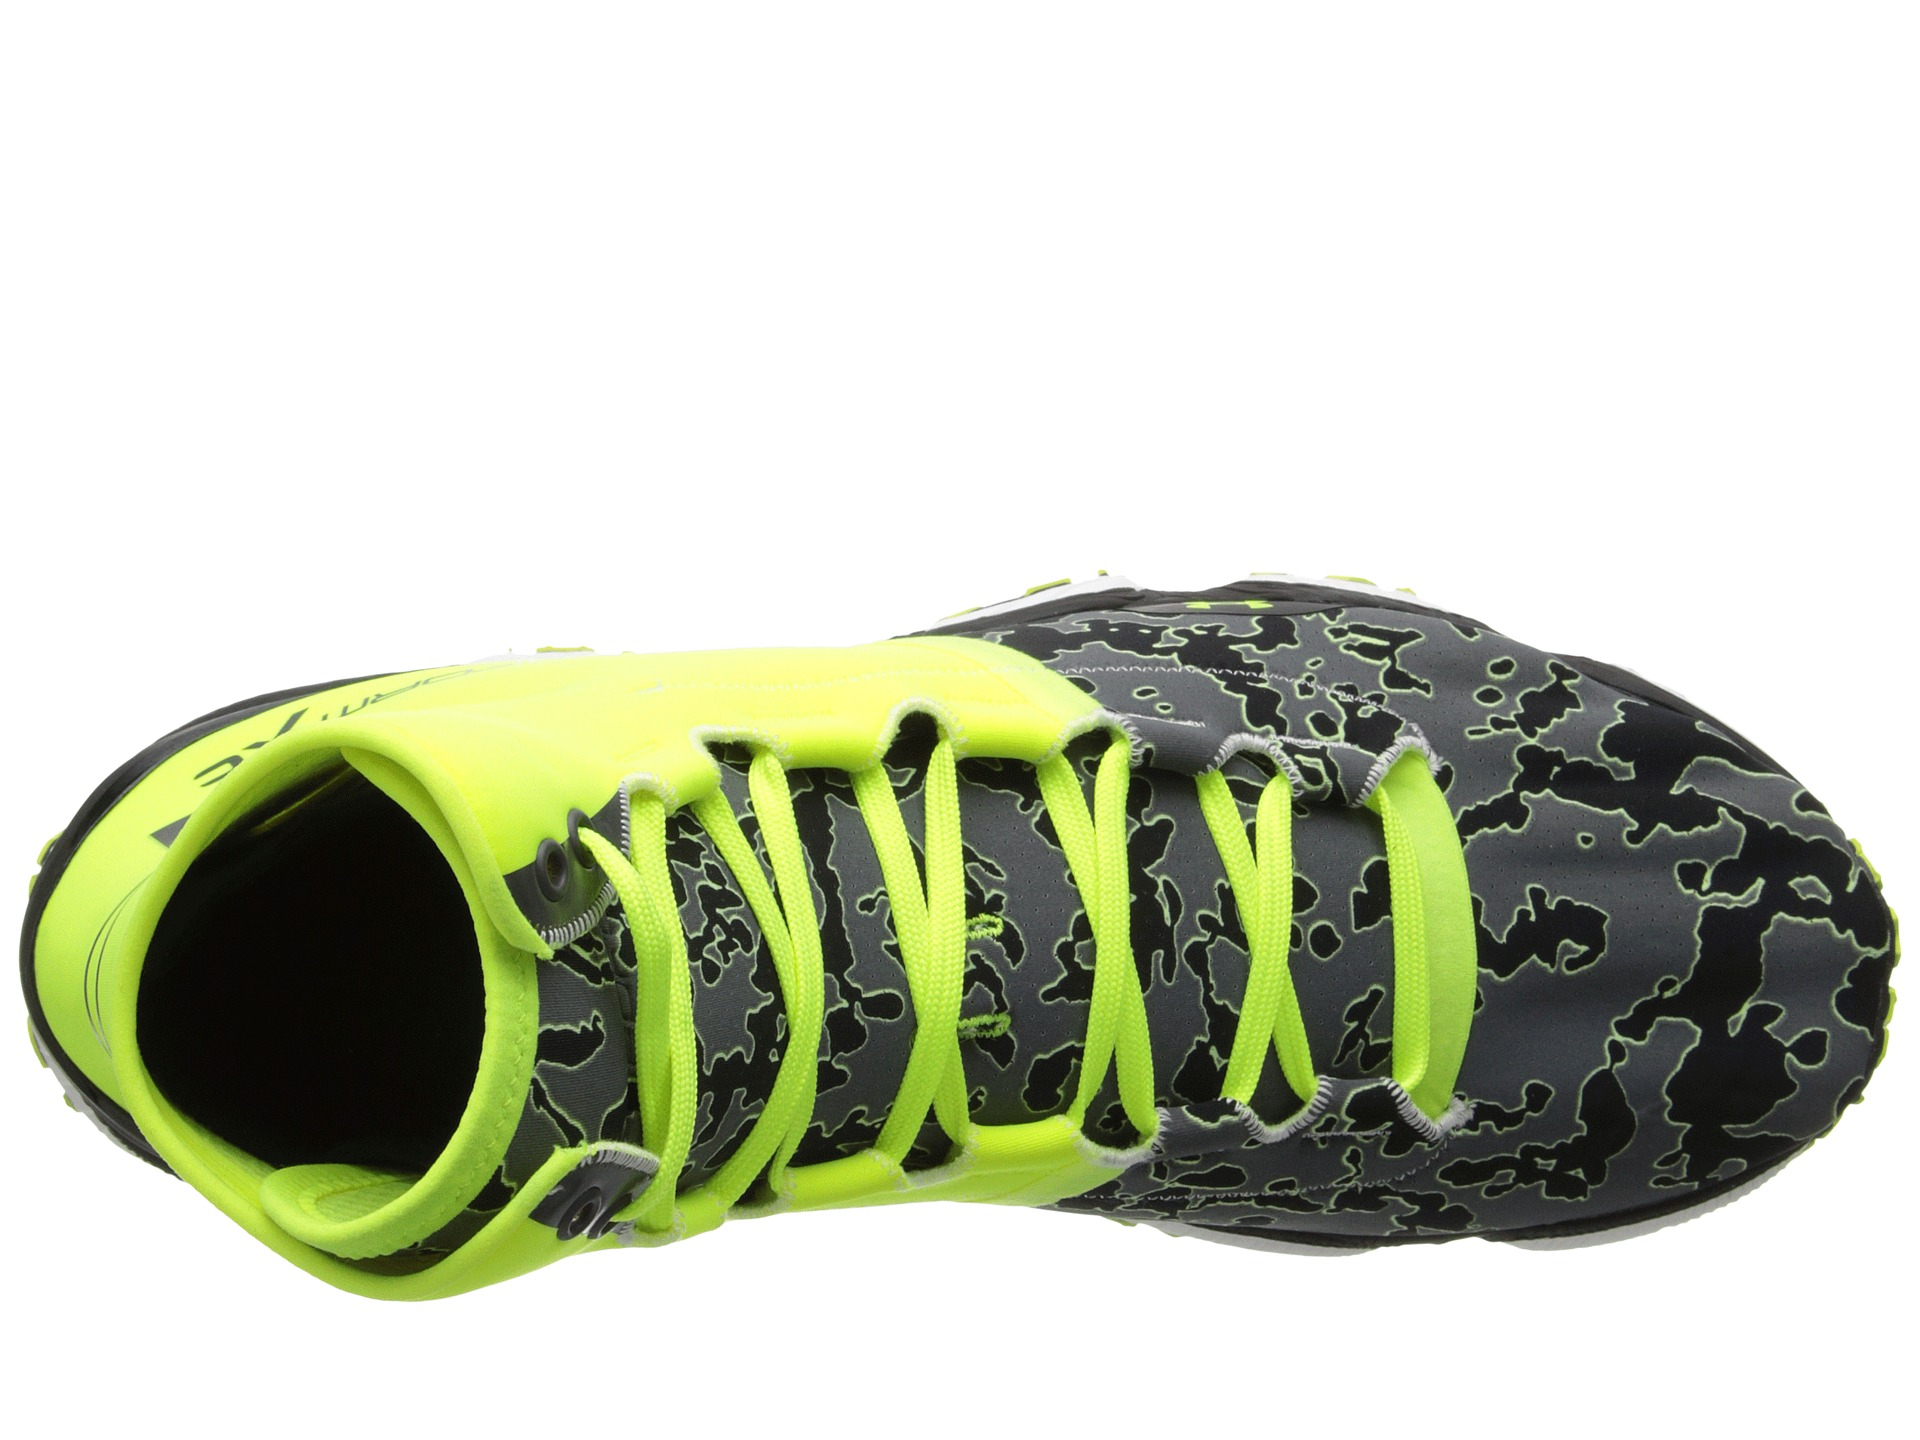 Lyst - Under Armour Ua Speedform Xc Mid in Yellow for Men 619982685